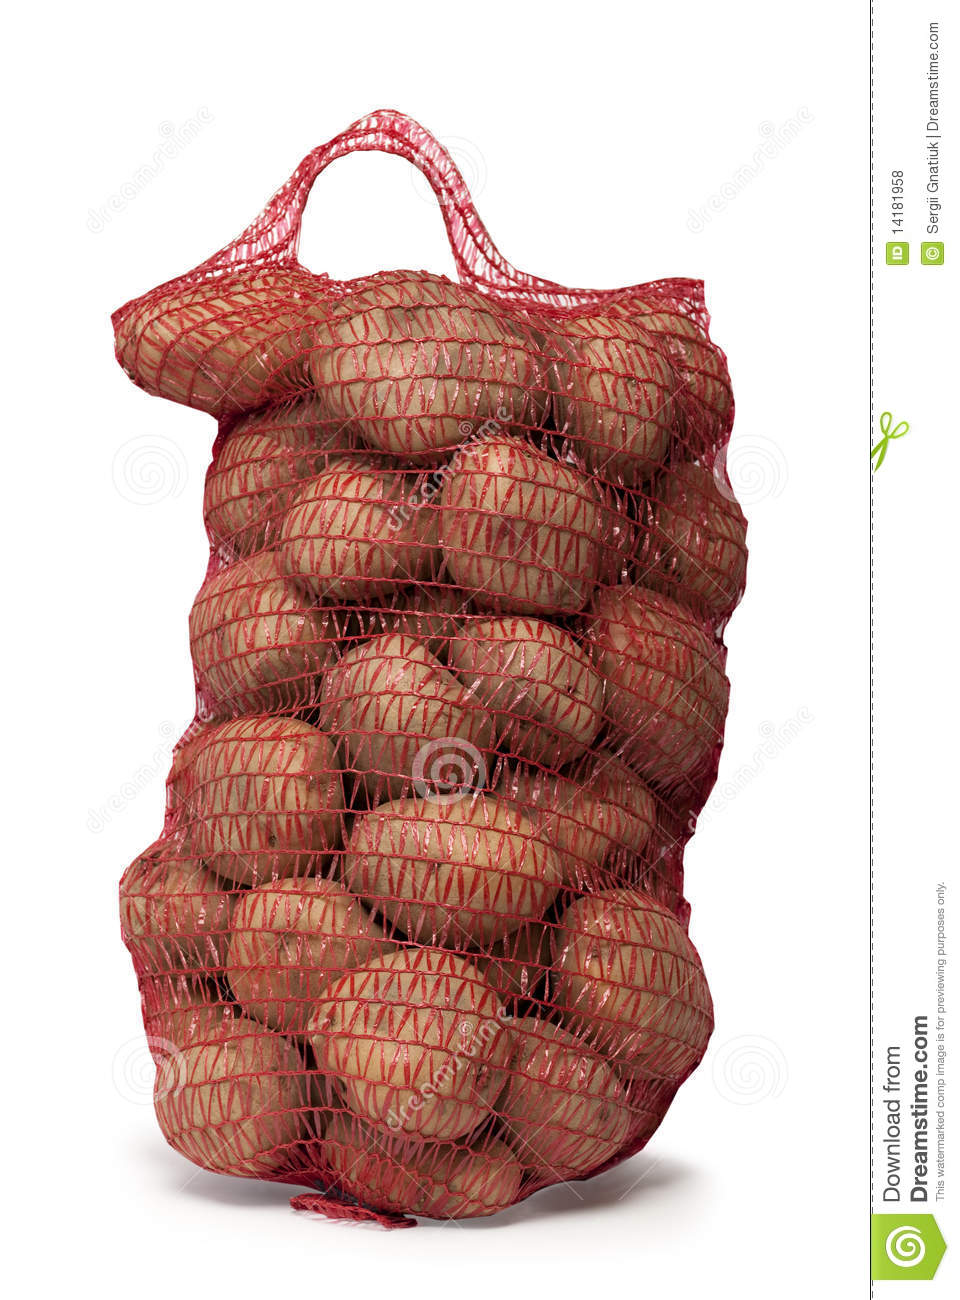 Bag of potatoes stock photo. Image of single, objects ...